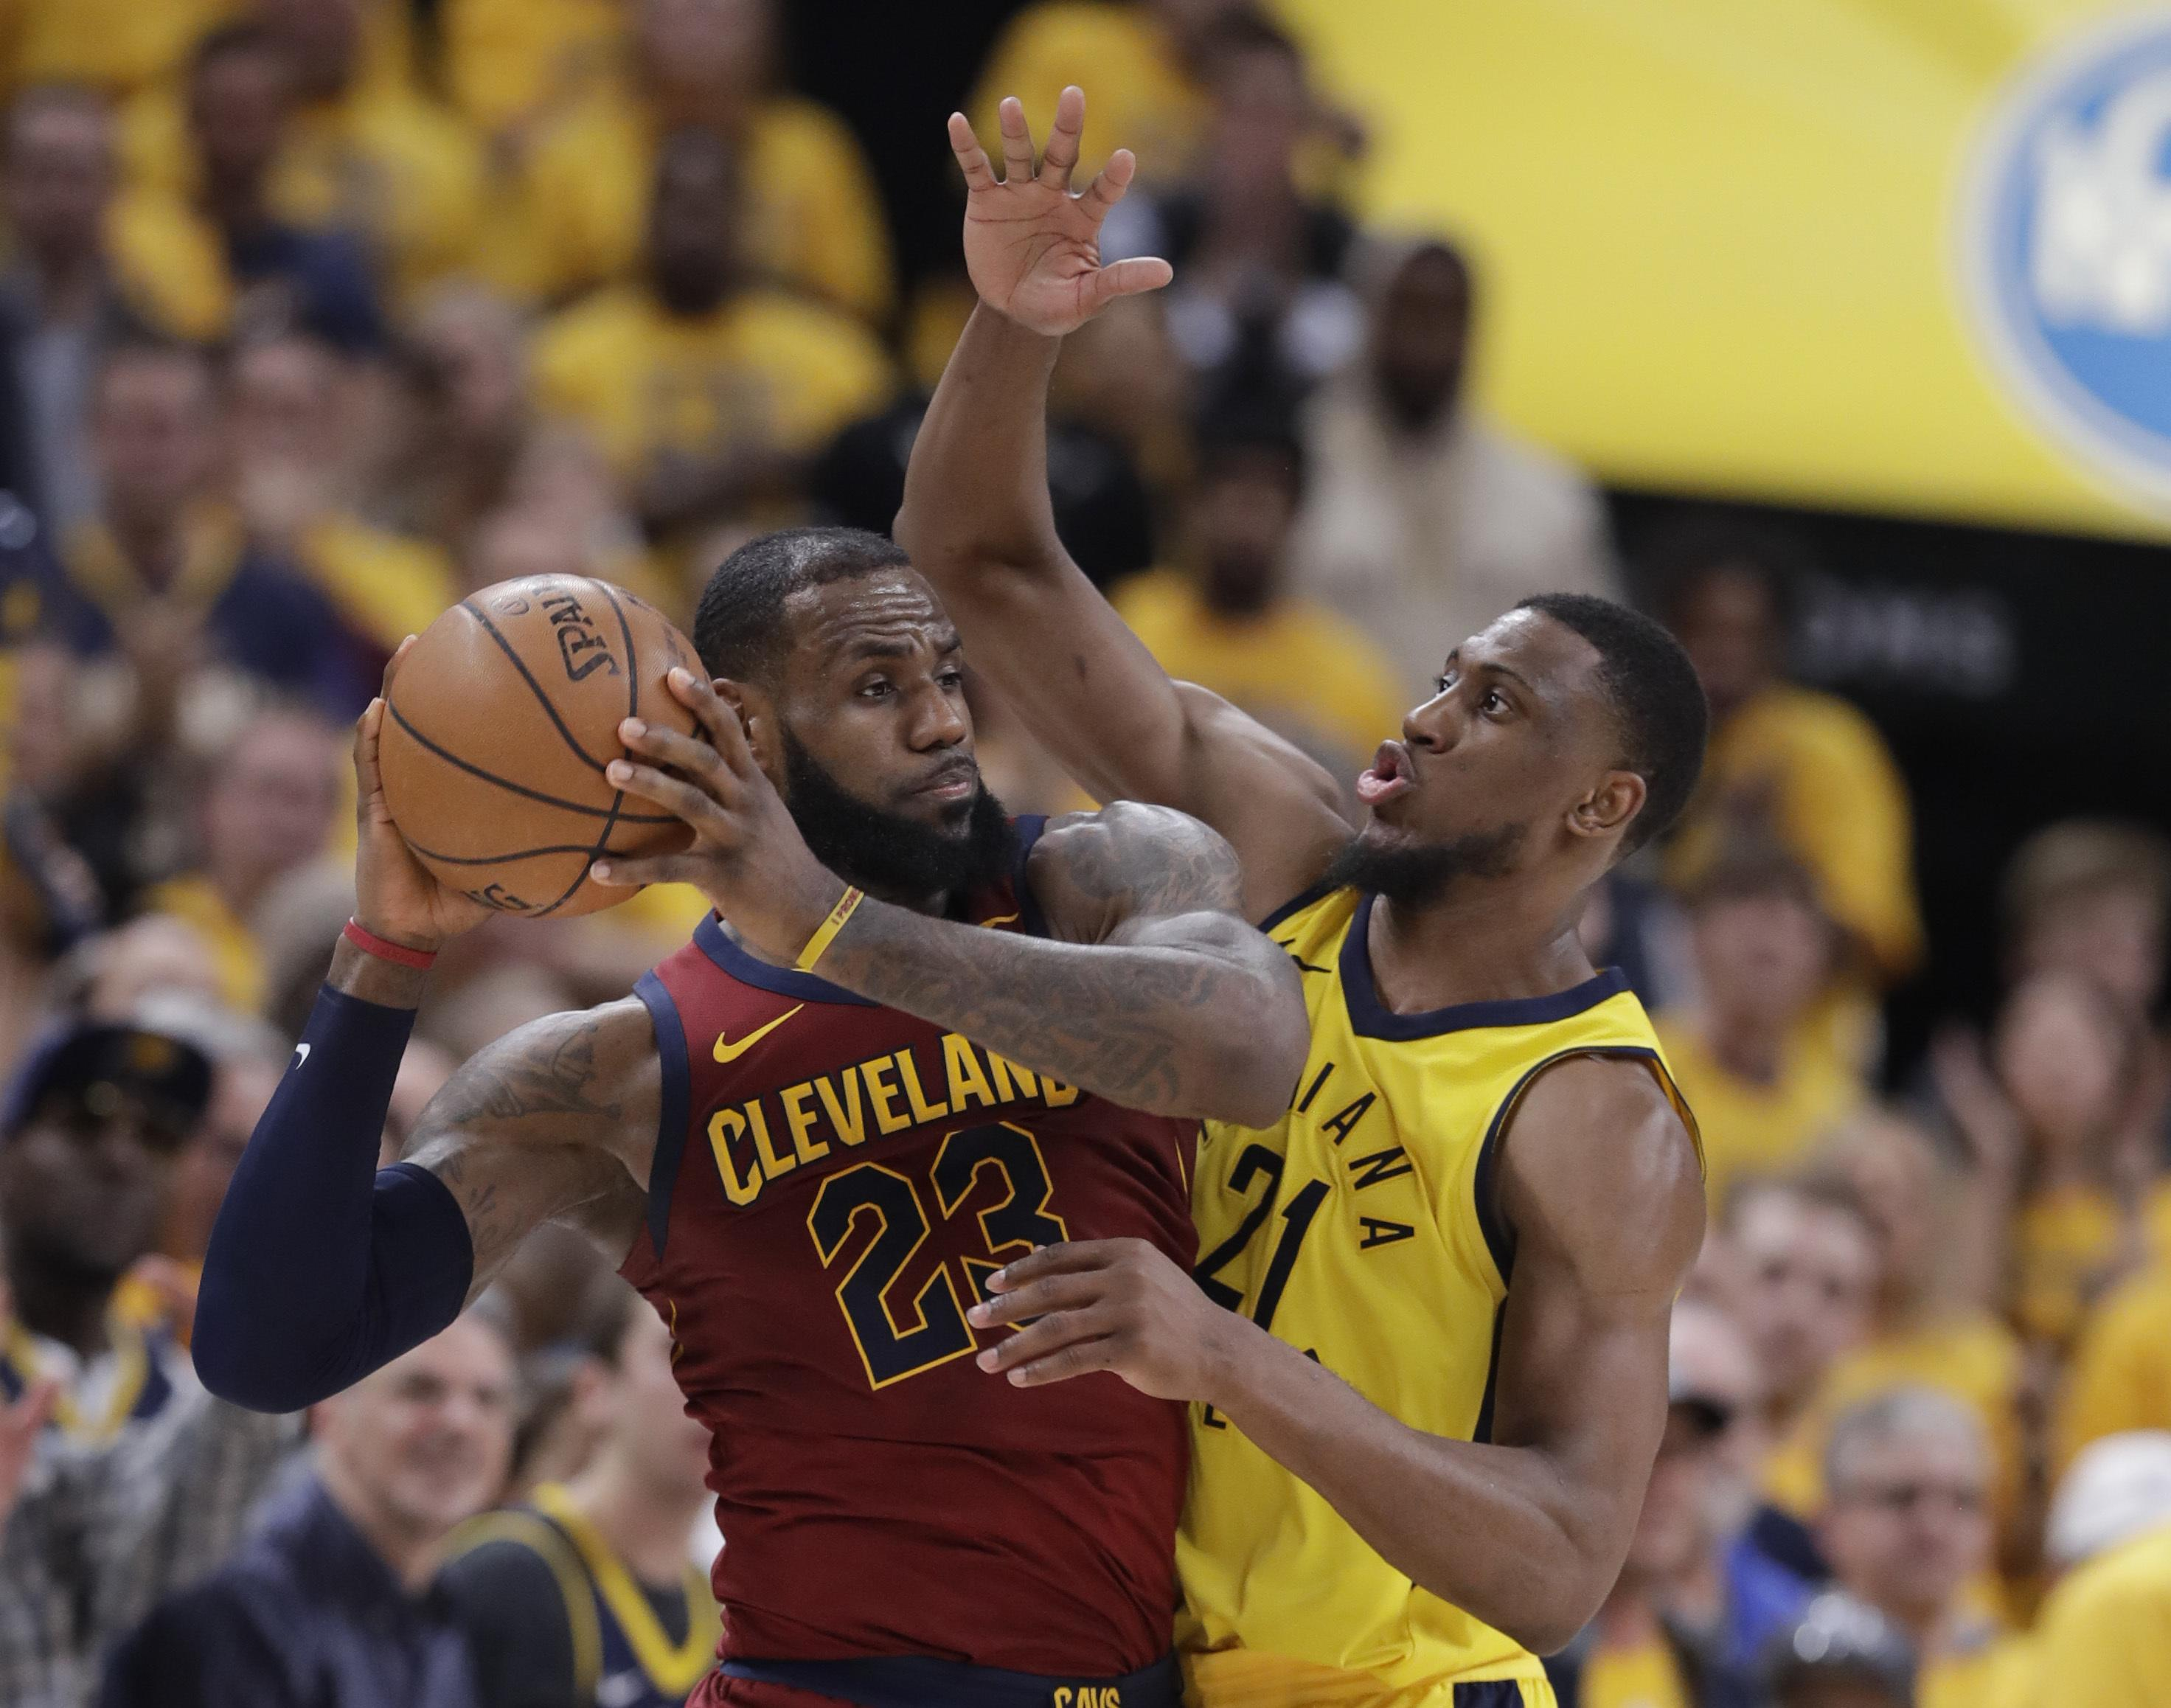 6717cd8ce53 In this April 20, 2018 file photo, Cleveland Cavaliers' LeBron James (23